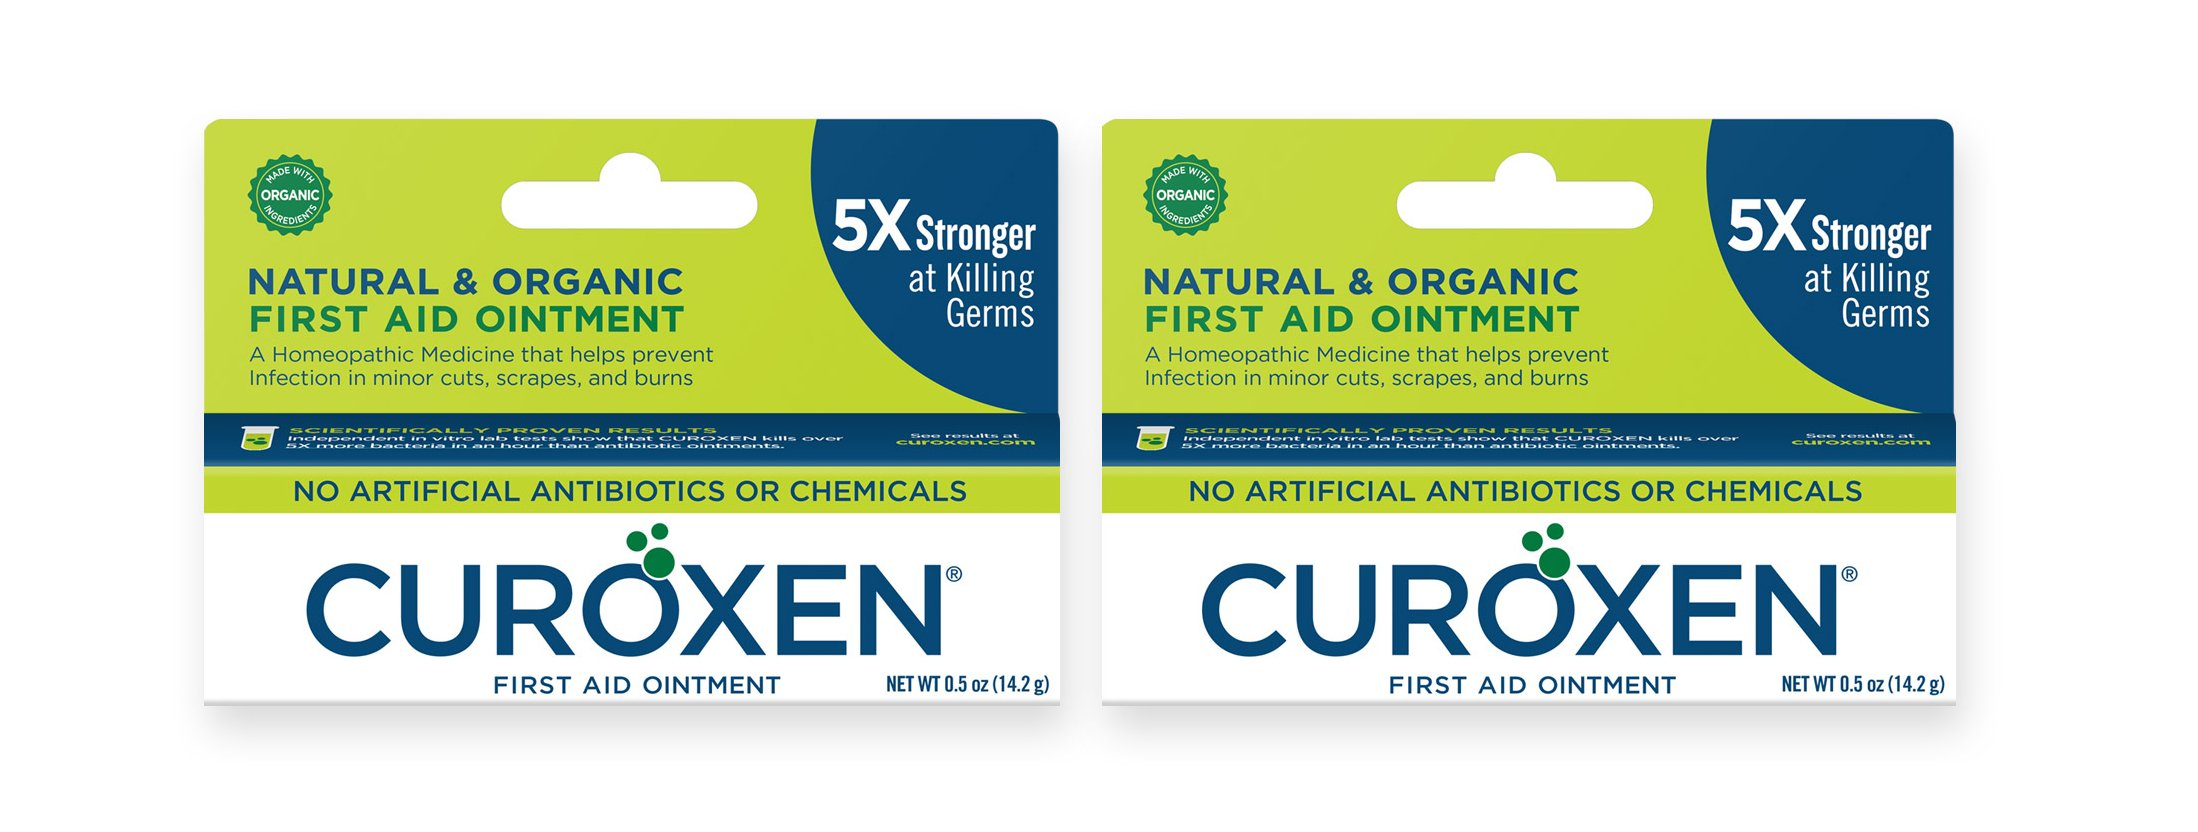 CUROXEN All-Natural & Organic First Aid Ointment with No Antibiotics or Chemicals, 2 Pack